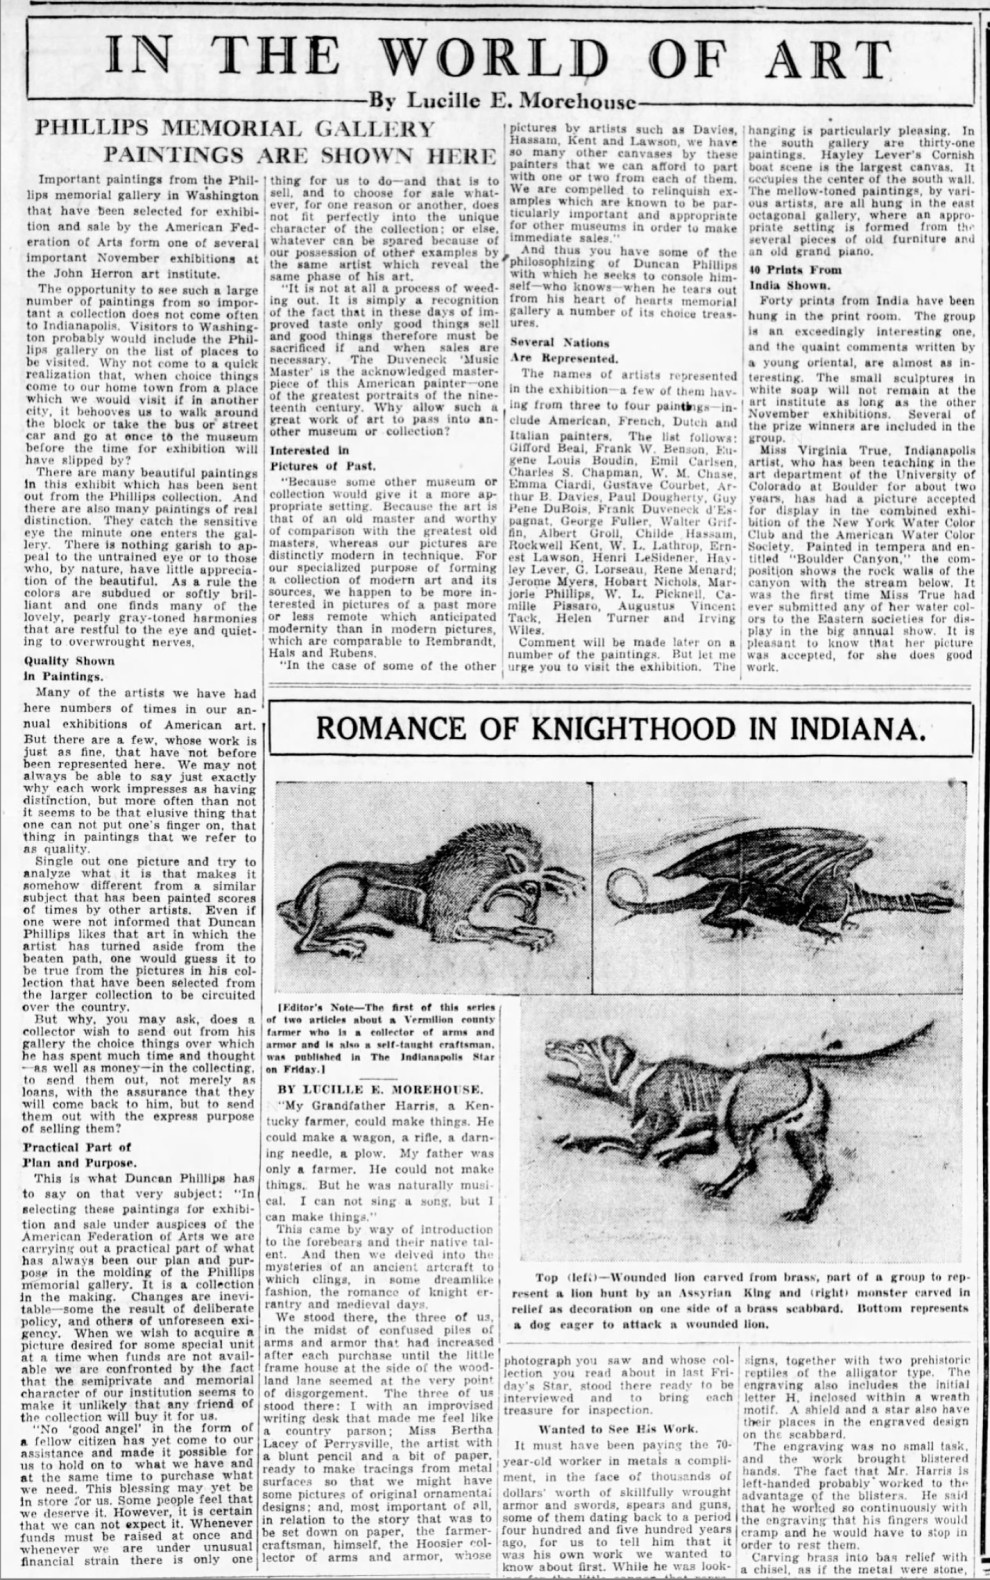 """The Indianapolis Star, Indianapolis, IN, """"In the world of art : Phillips memorial gallery paintings are shown here"""" by Lucille E. Morehouse, Sunday, November 9, 1930, page 53, not illustrated."""